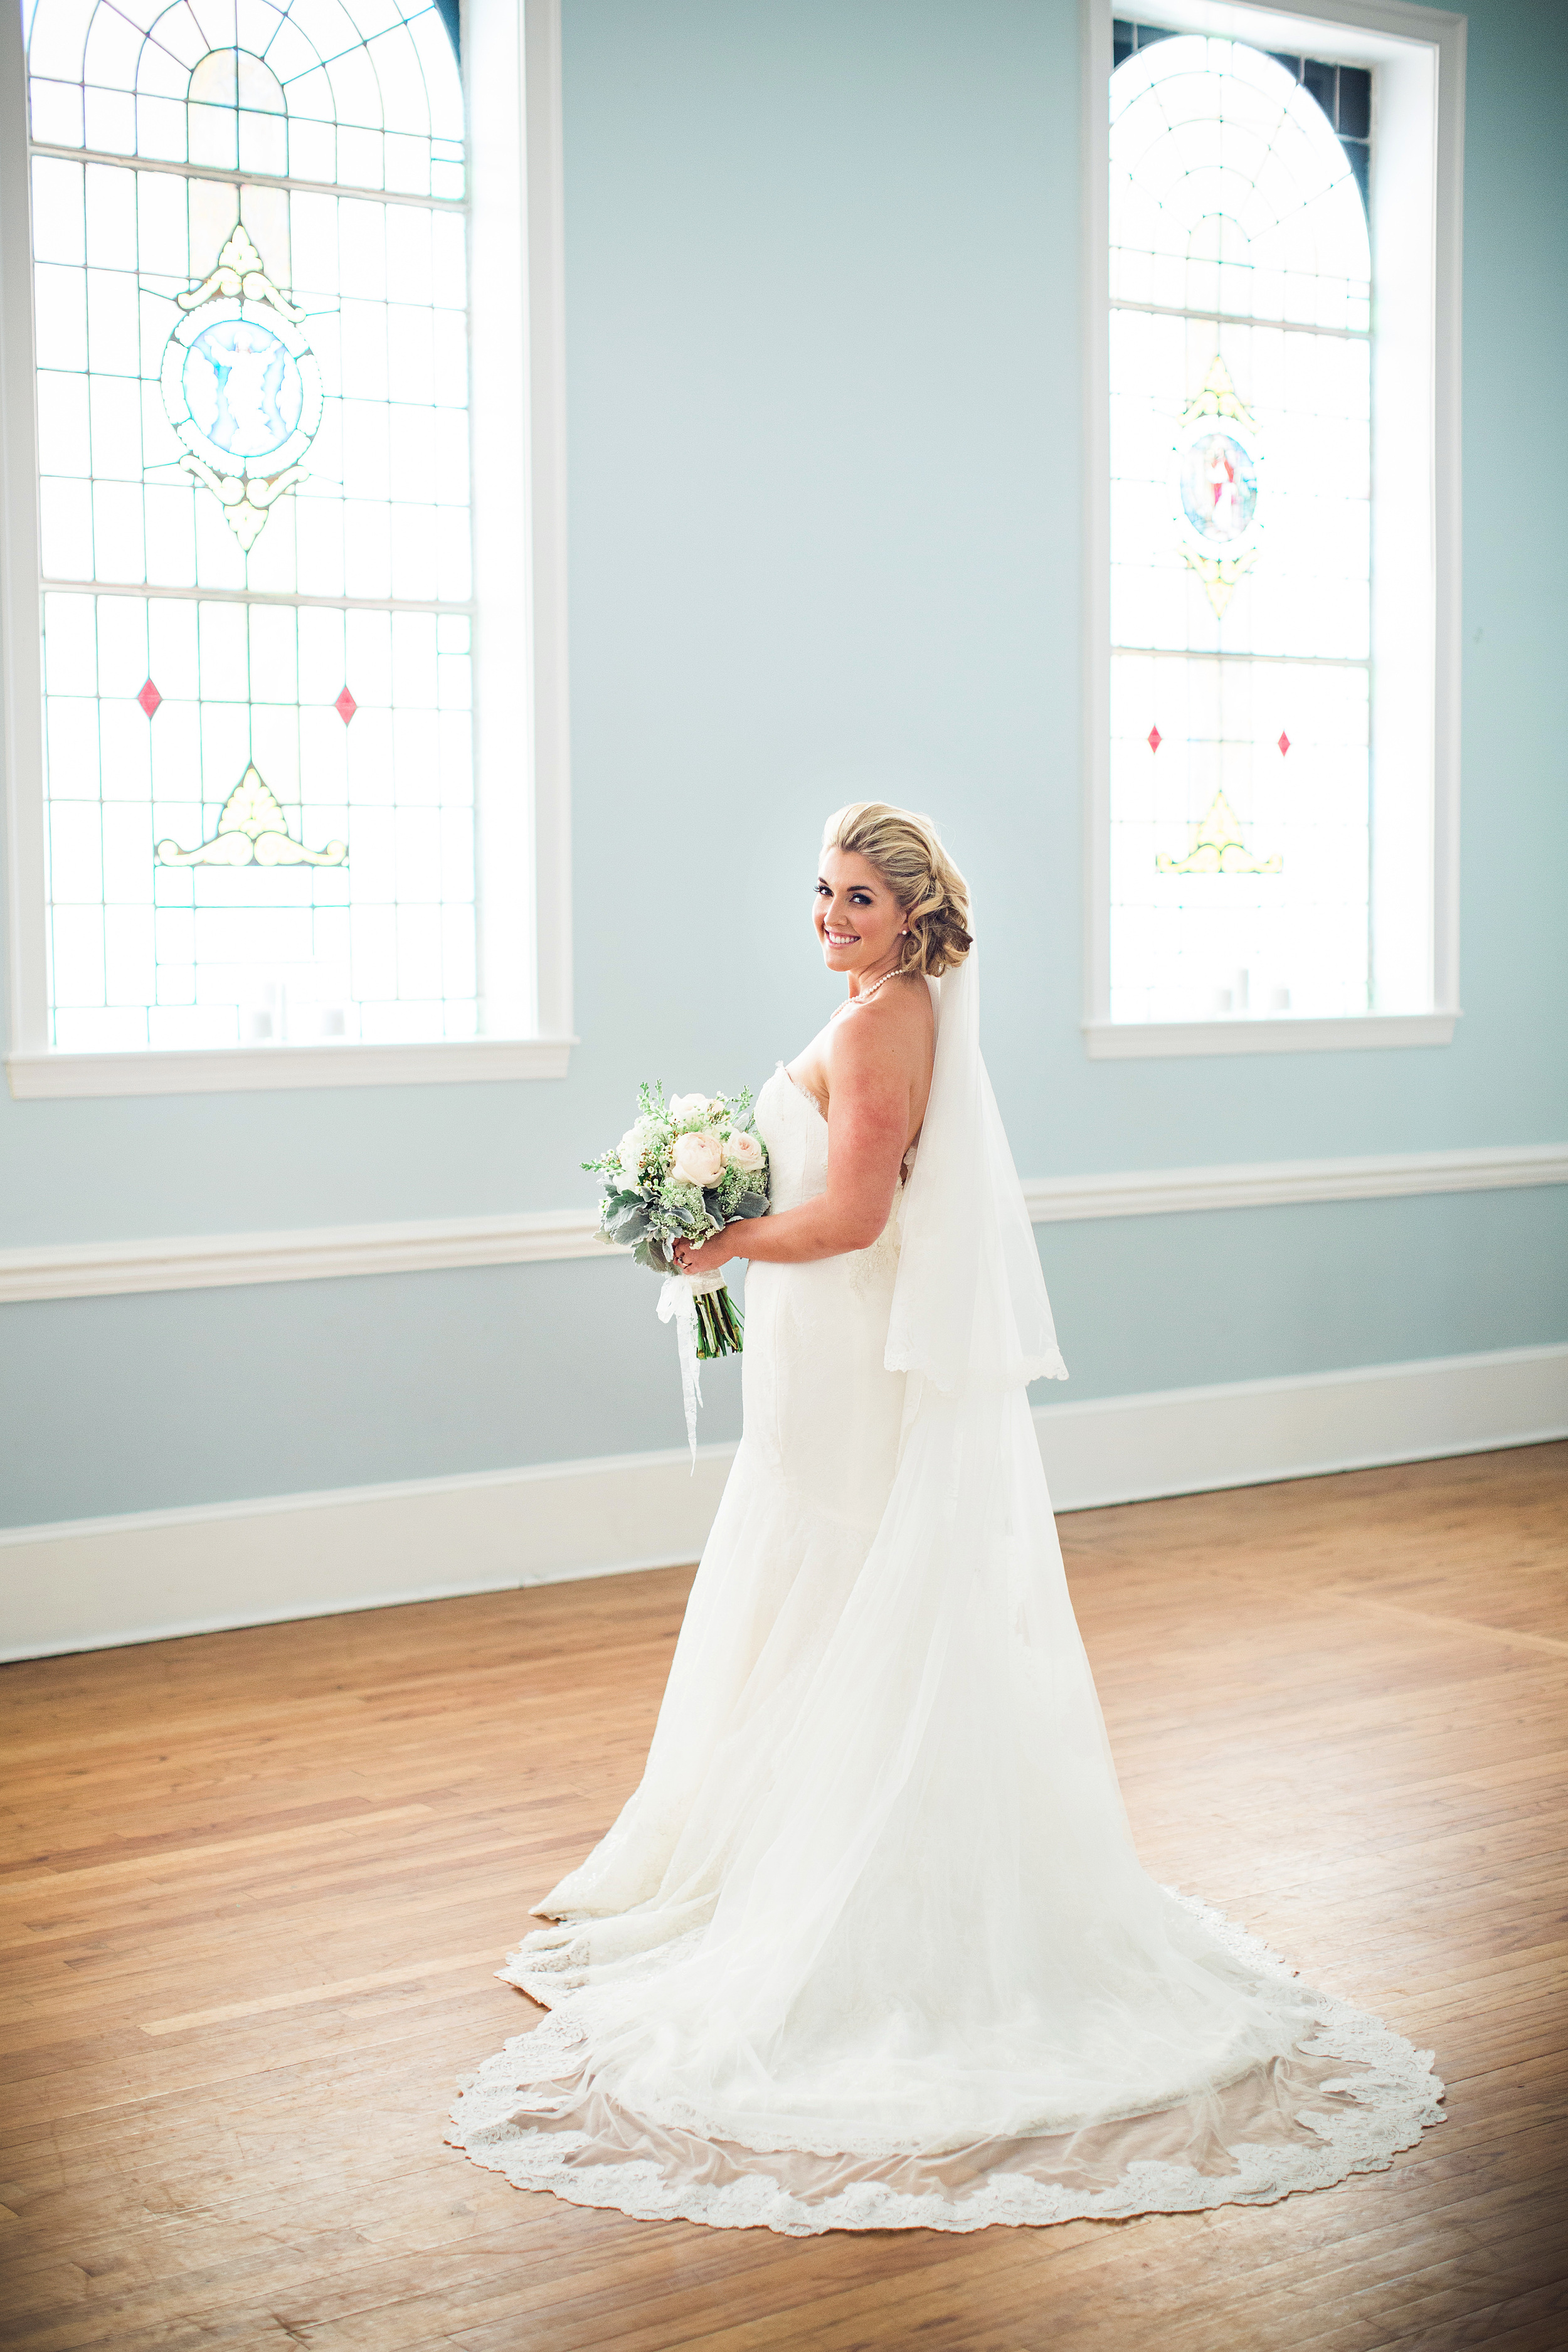 Hillary-and-Brian-izzy-hudgins-photography-anais-anette-tristan-lace-mermaid-wedding-dress-ivory-and-beau-bridal-boutique-savannah-bridal-boutique-savannah-wedding-dresses-savannah-bridal-gowns-savannah-wedding-dresses-first-babtist-savannah-9.jpg